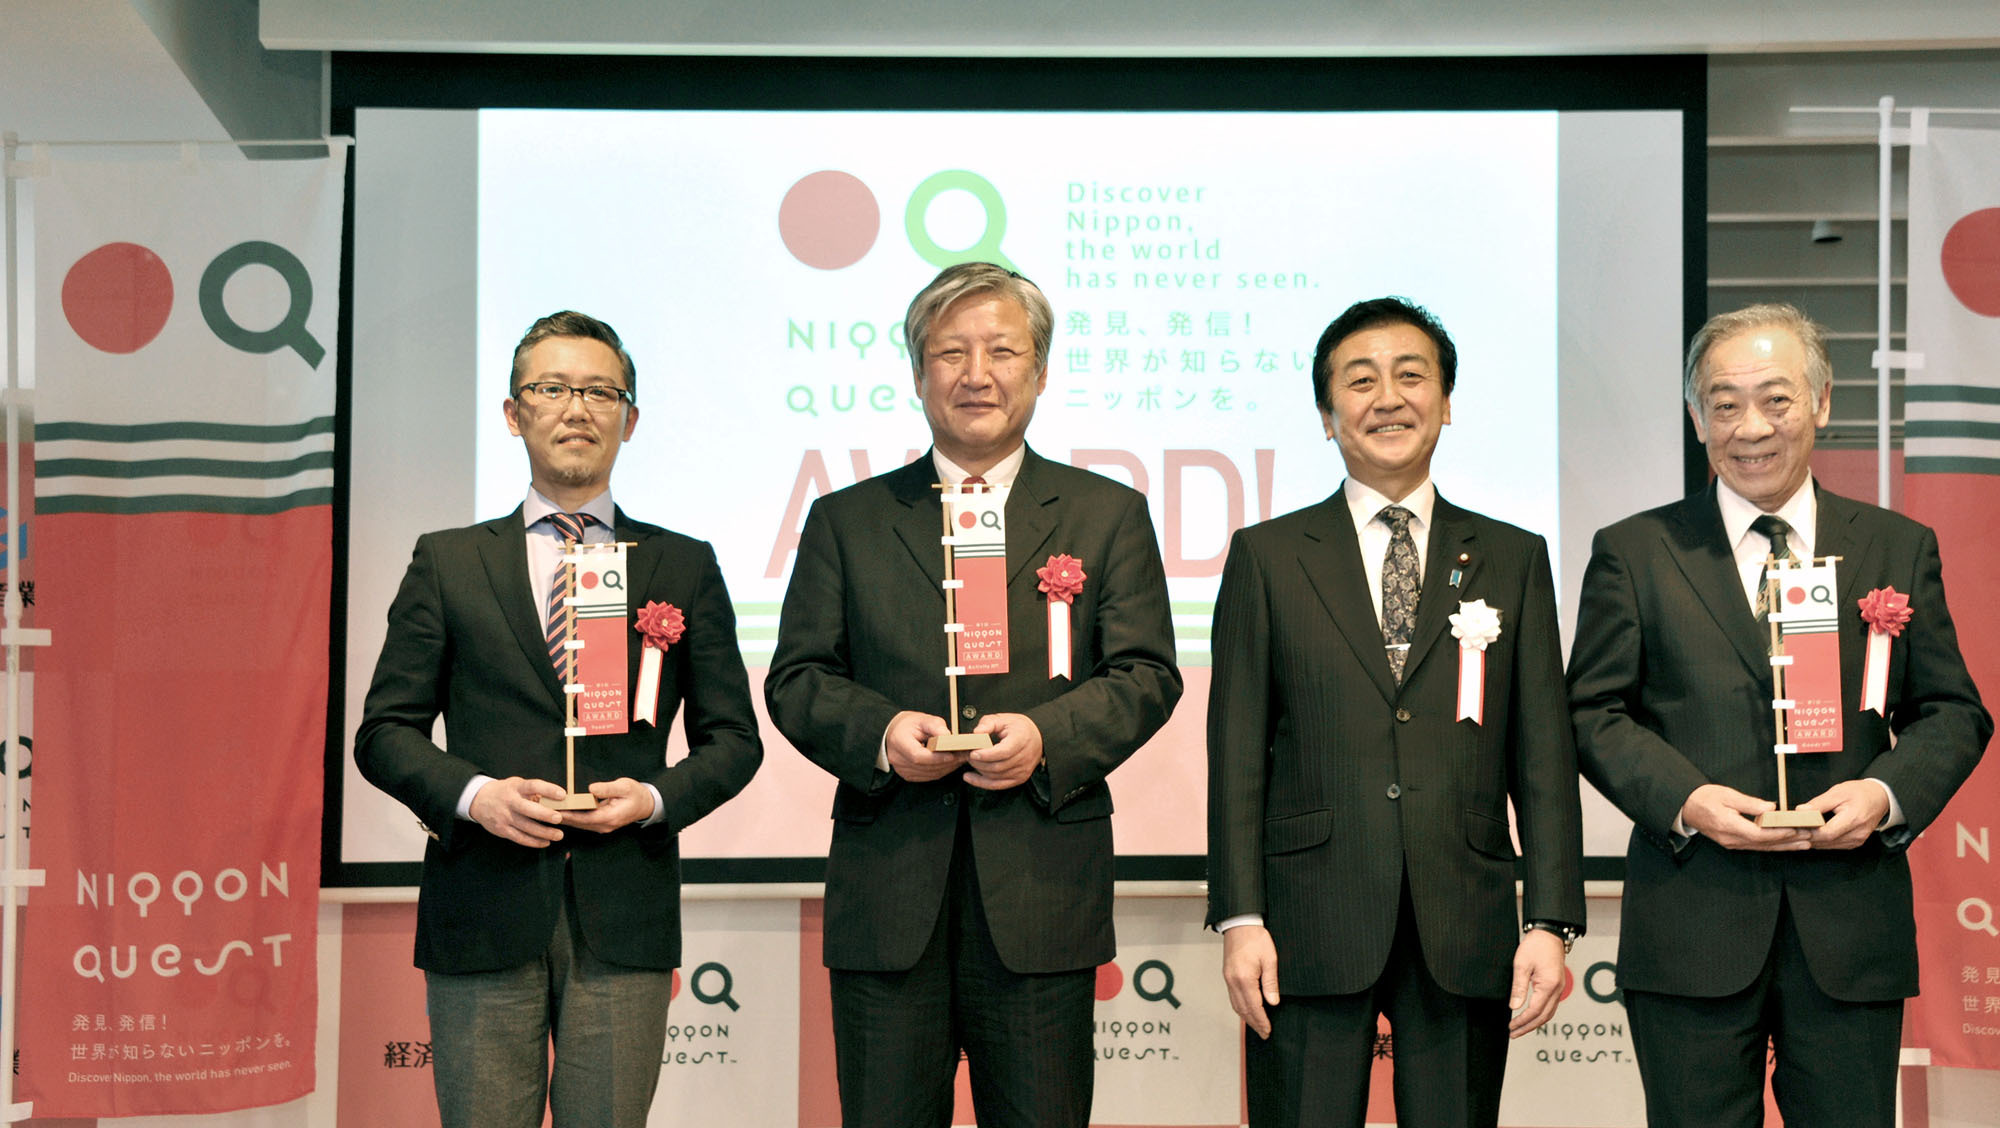 "Economy, Trade and Industry Vice Minister Tsuyoshi Hoshino (second from right) poses with winners of the first Nippon Quest Awards at Marugoto Nippon in Asakusa, Tokyo, on March 4. The awards are given to people who spread information about unique regional items on the Nippon Quest website. (From left) ""Food Specialty"" winner Dainari Goka, who won for Halal Gyoza by Nikkoken; ""Goods Specialty"" winner Seiichi Kimoto, who won for Raven Edo Kiriko; and ""Activity Specialty"" winner Genrokuro Matsunaga, who won for visiting a Japanese sword smith. 